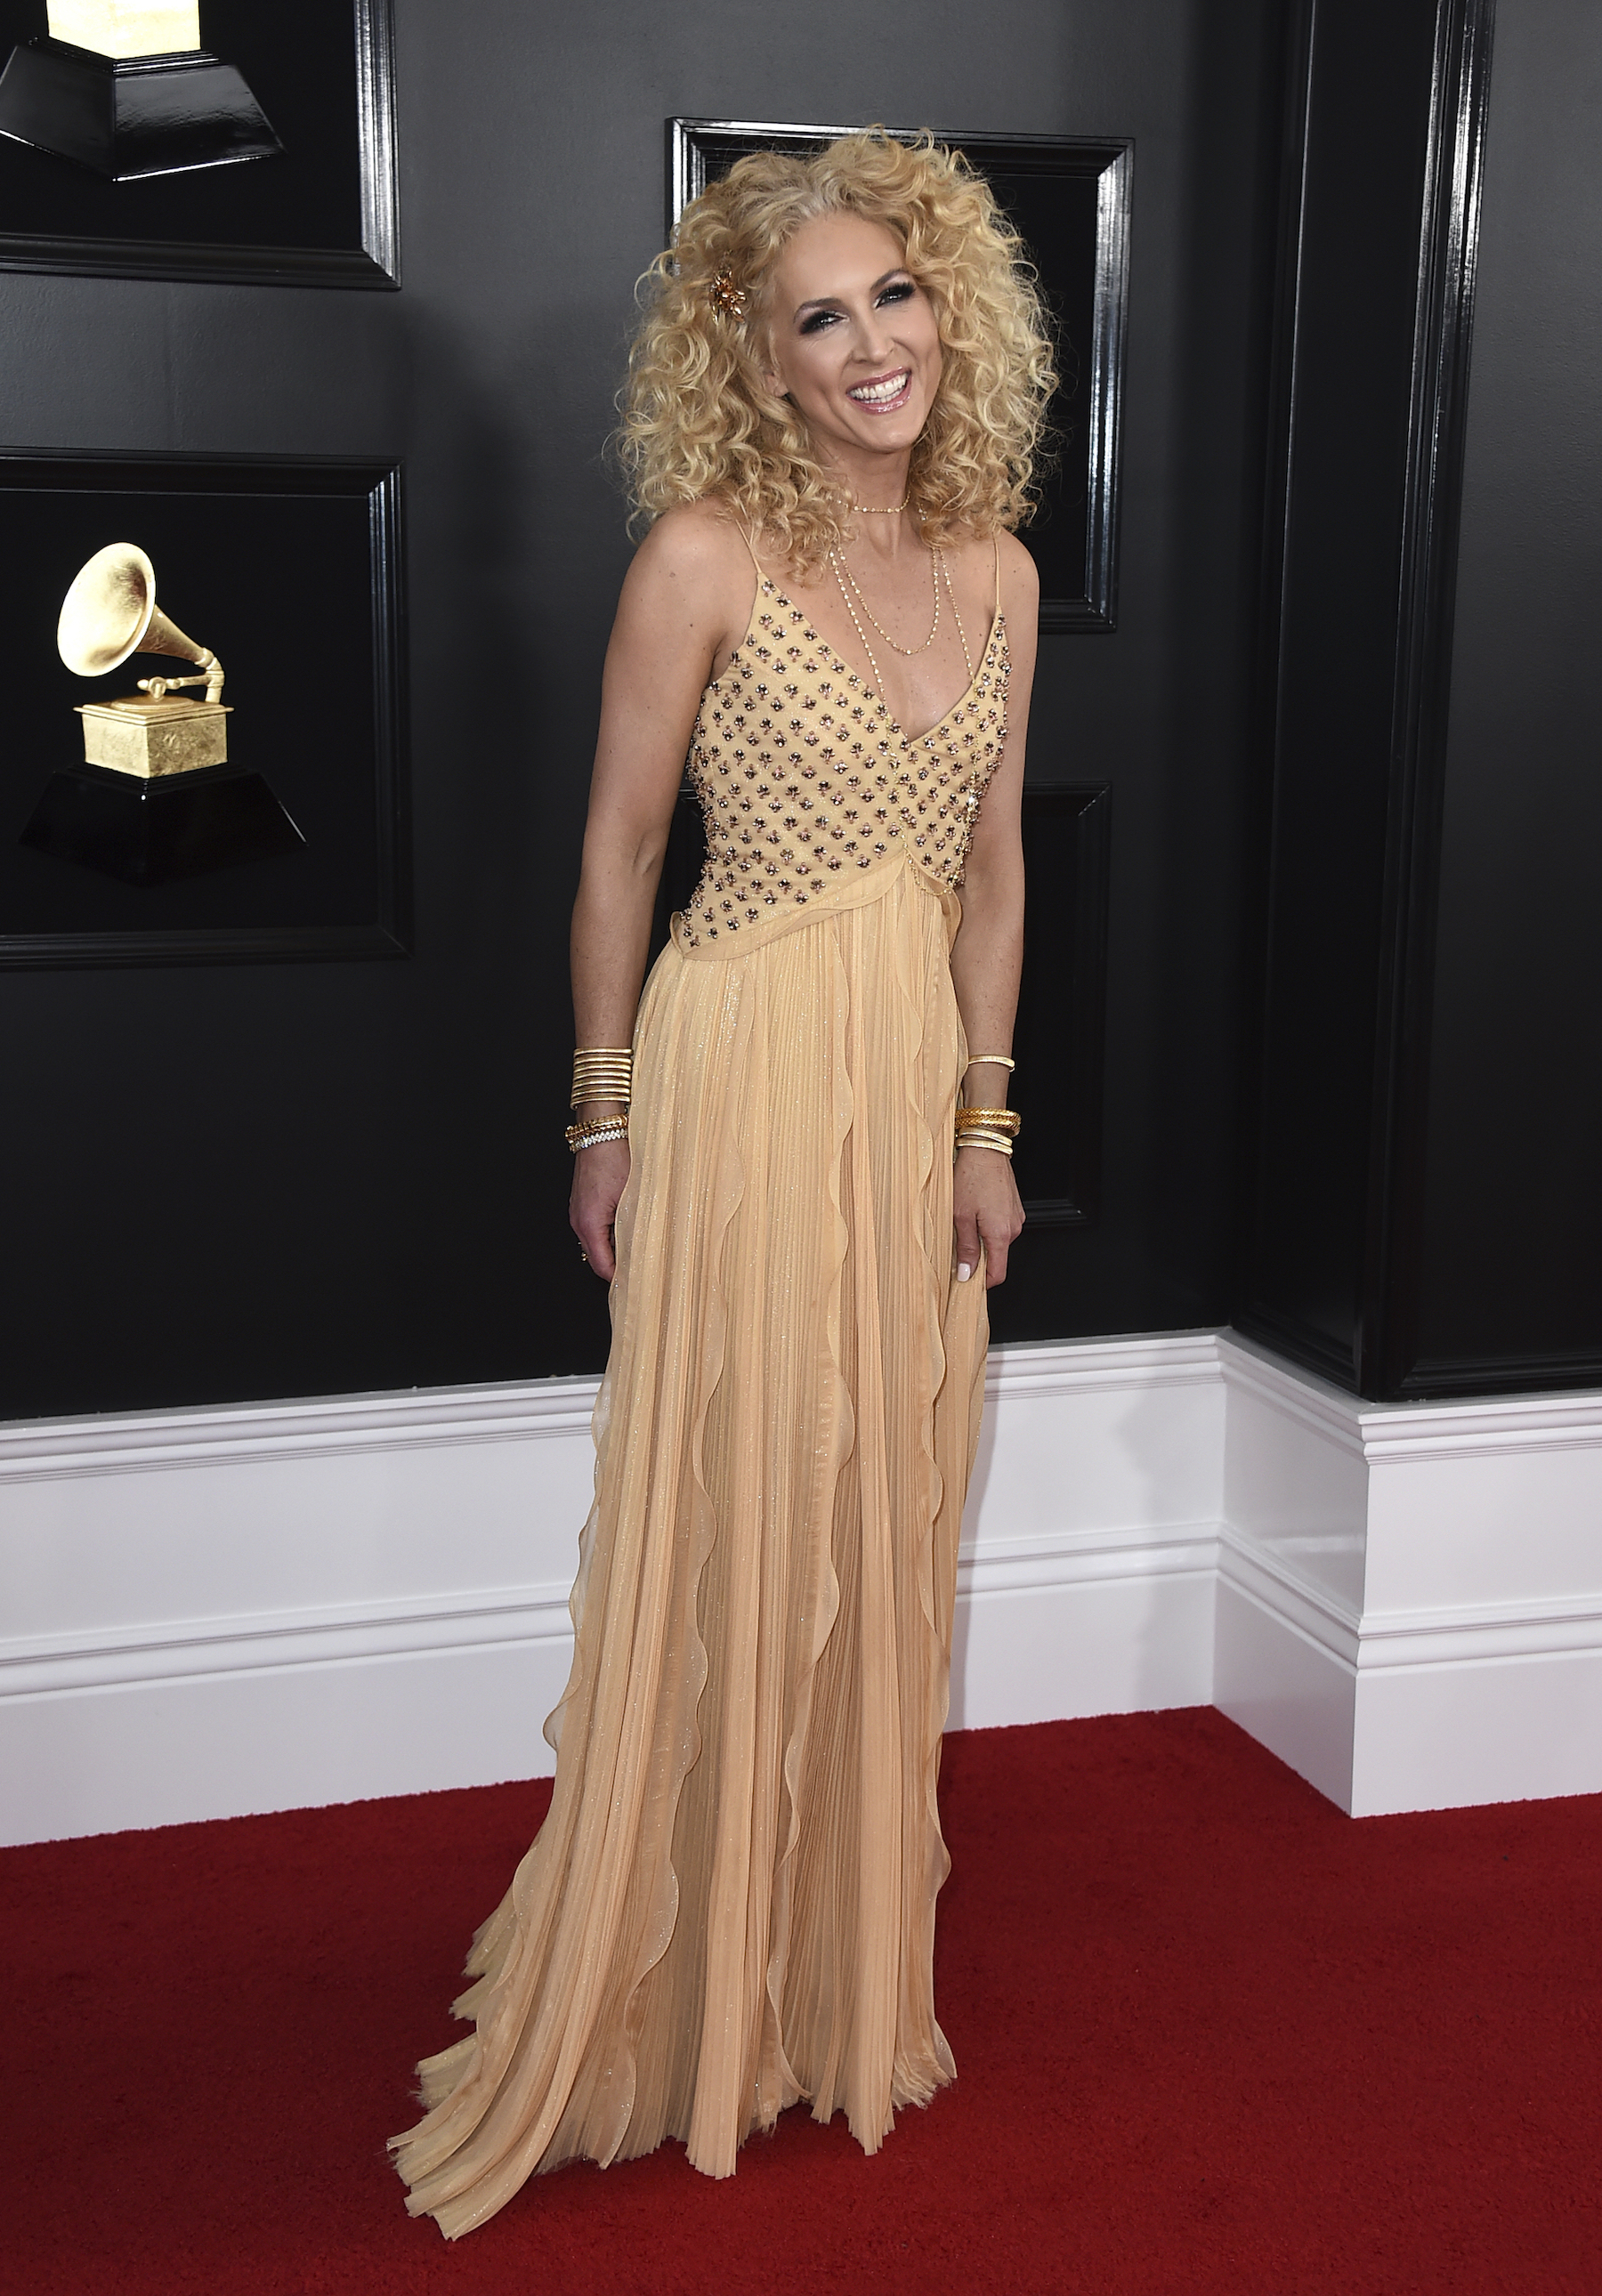 <div class='meta'><div class='origin-logo' data-origin='AP'></div><span class='caption-text' data-credit='Jordan Strauss/Invision/AP'>Kimberly Schlapman of Little Big Town arrives at the 61st annual Grammy Awards at the Staples Center on Sunday, Feb. 10, 2019, in Los Angeles.</span></div>